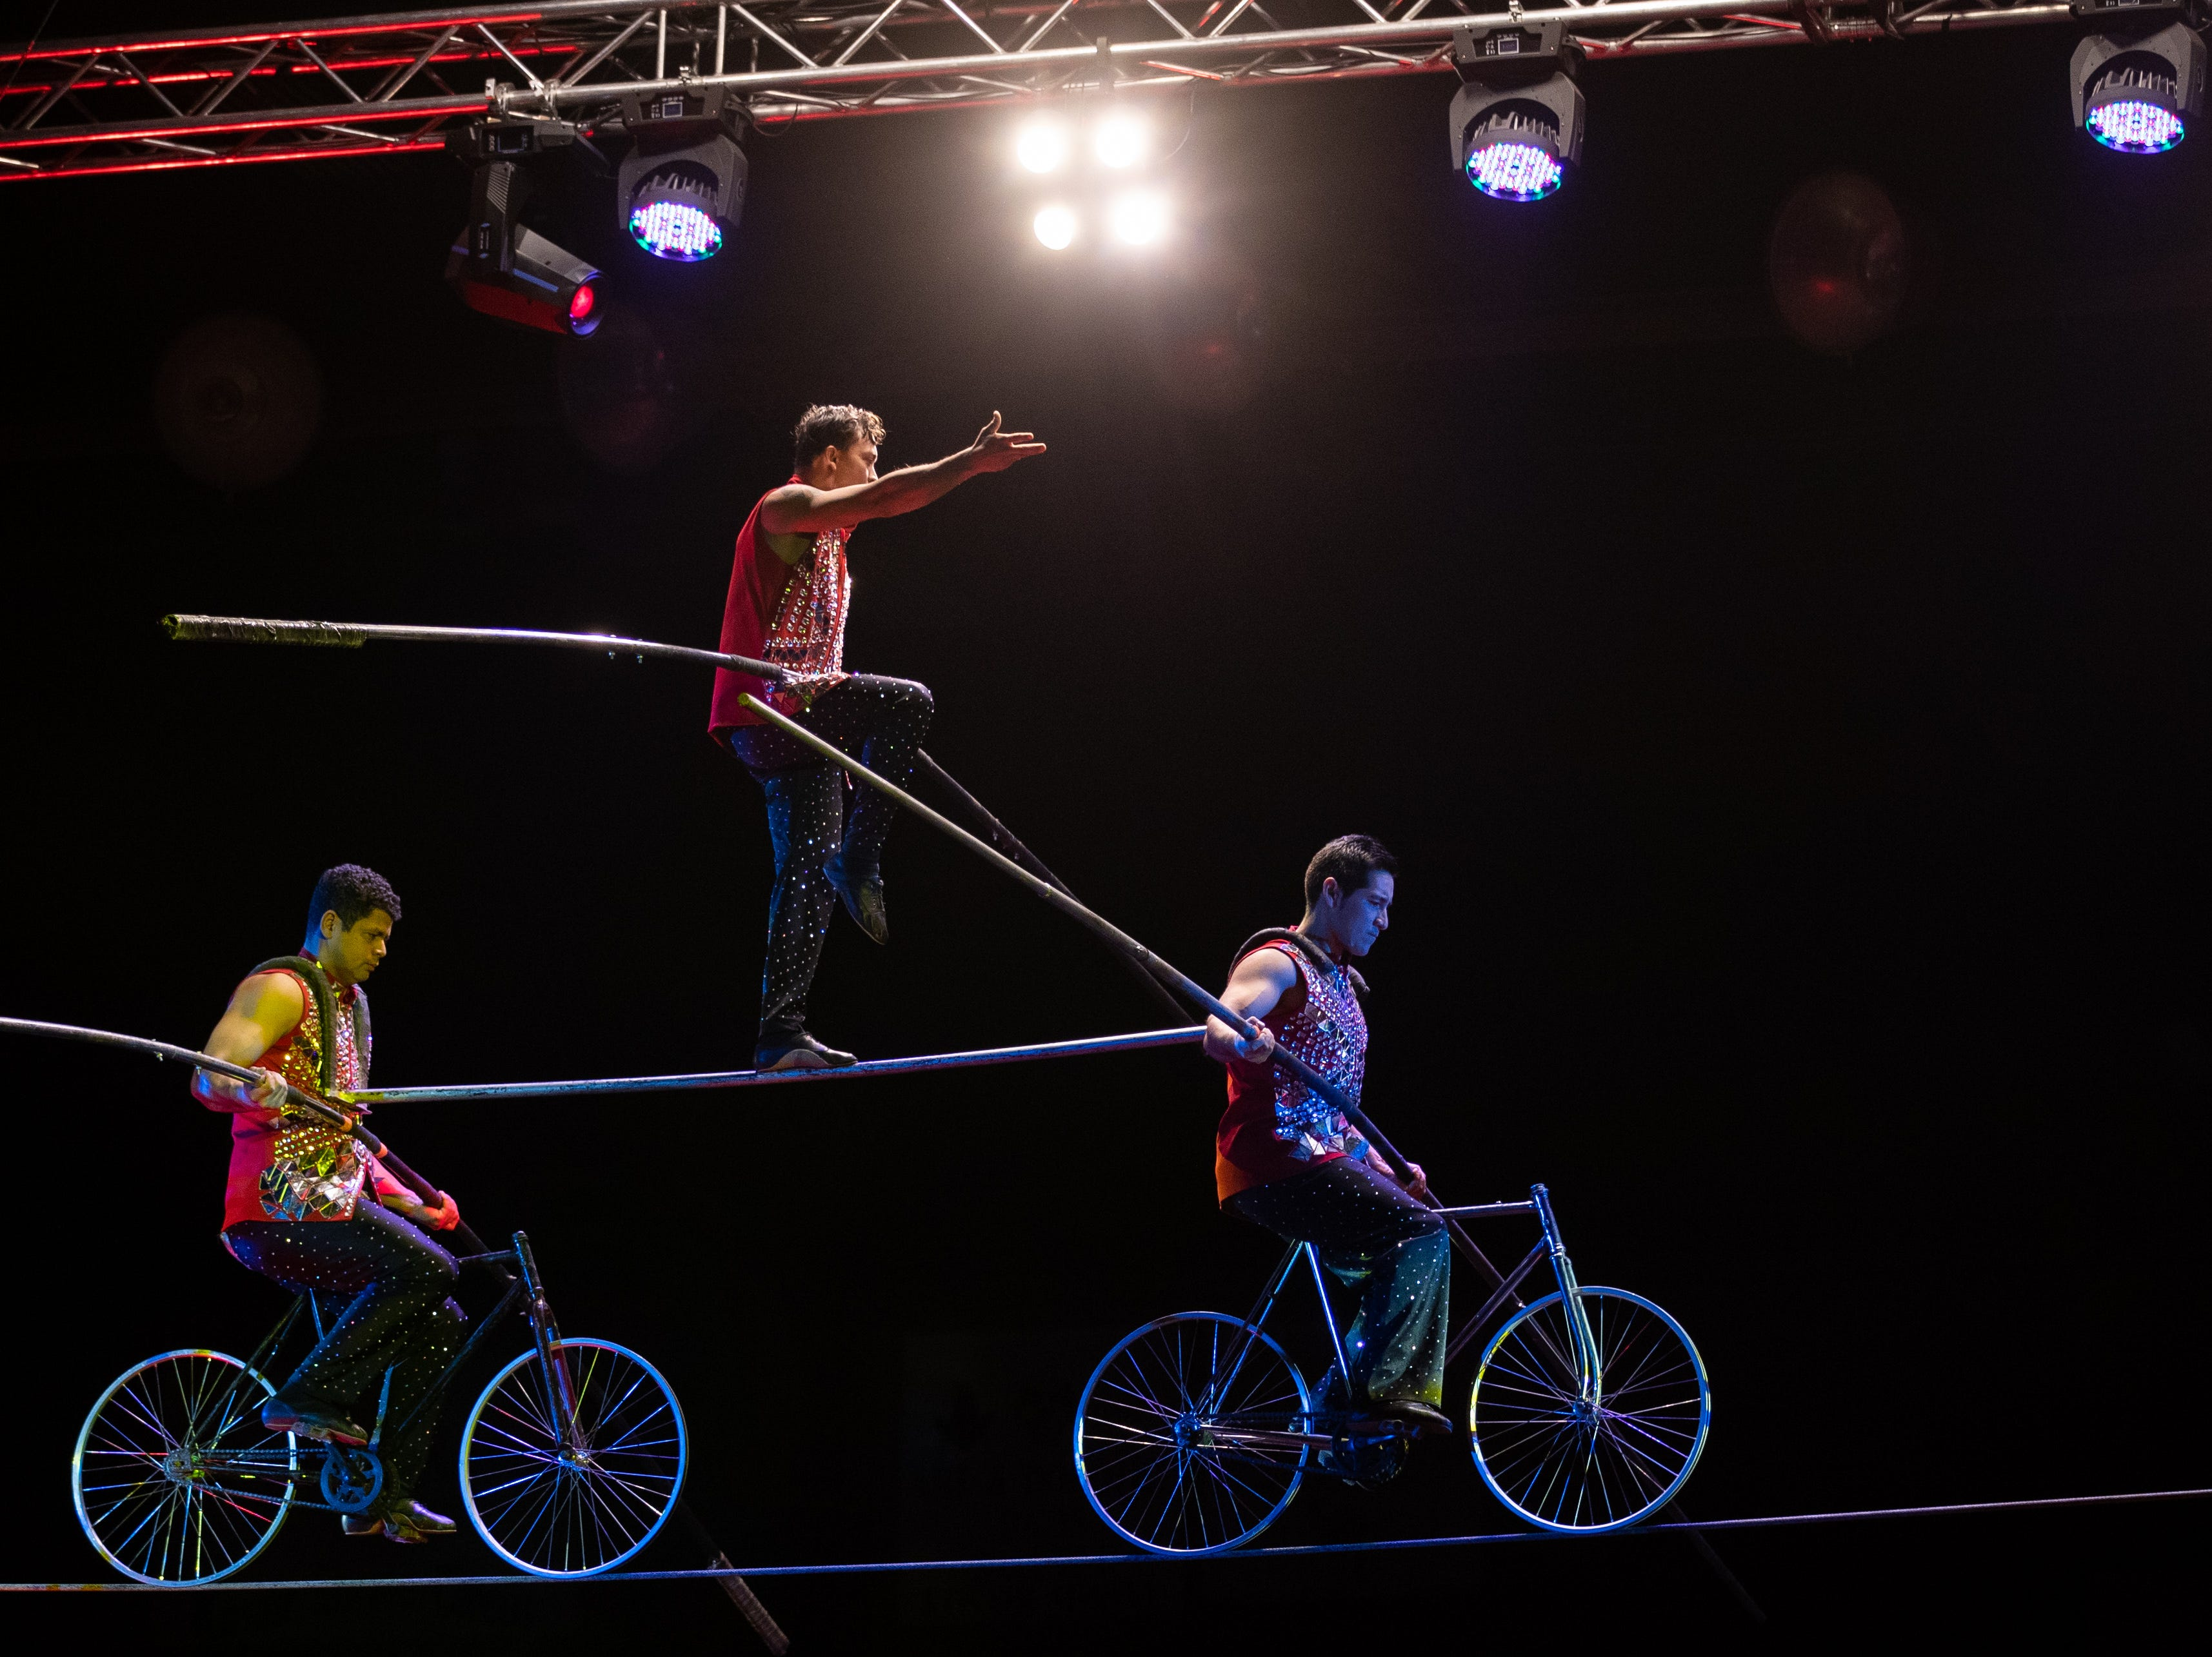 """Three tightrope performers balance on two bikes, a move touted """"the human pyramid"""" by the ringmaster, Saturday, Feb. 9, 2019 in Louisville Ky."""